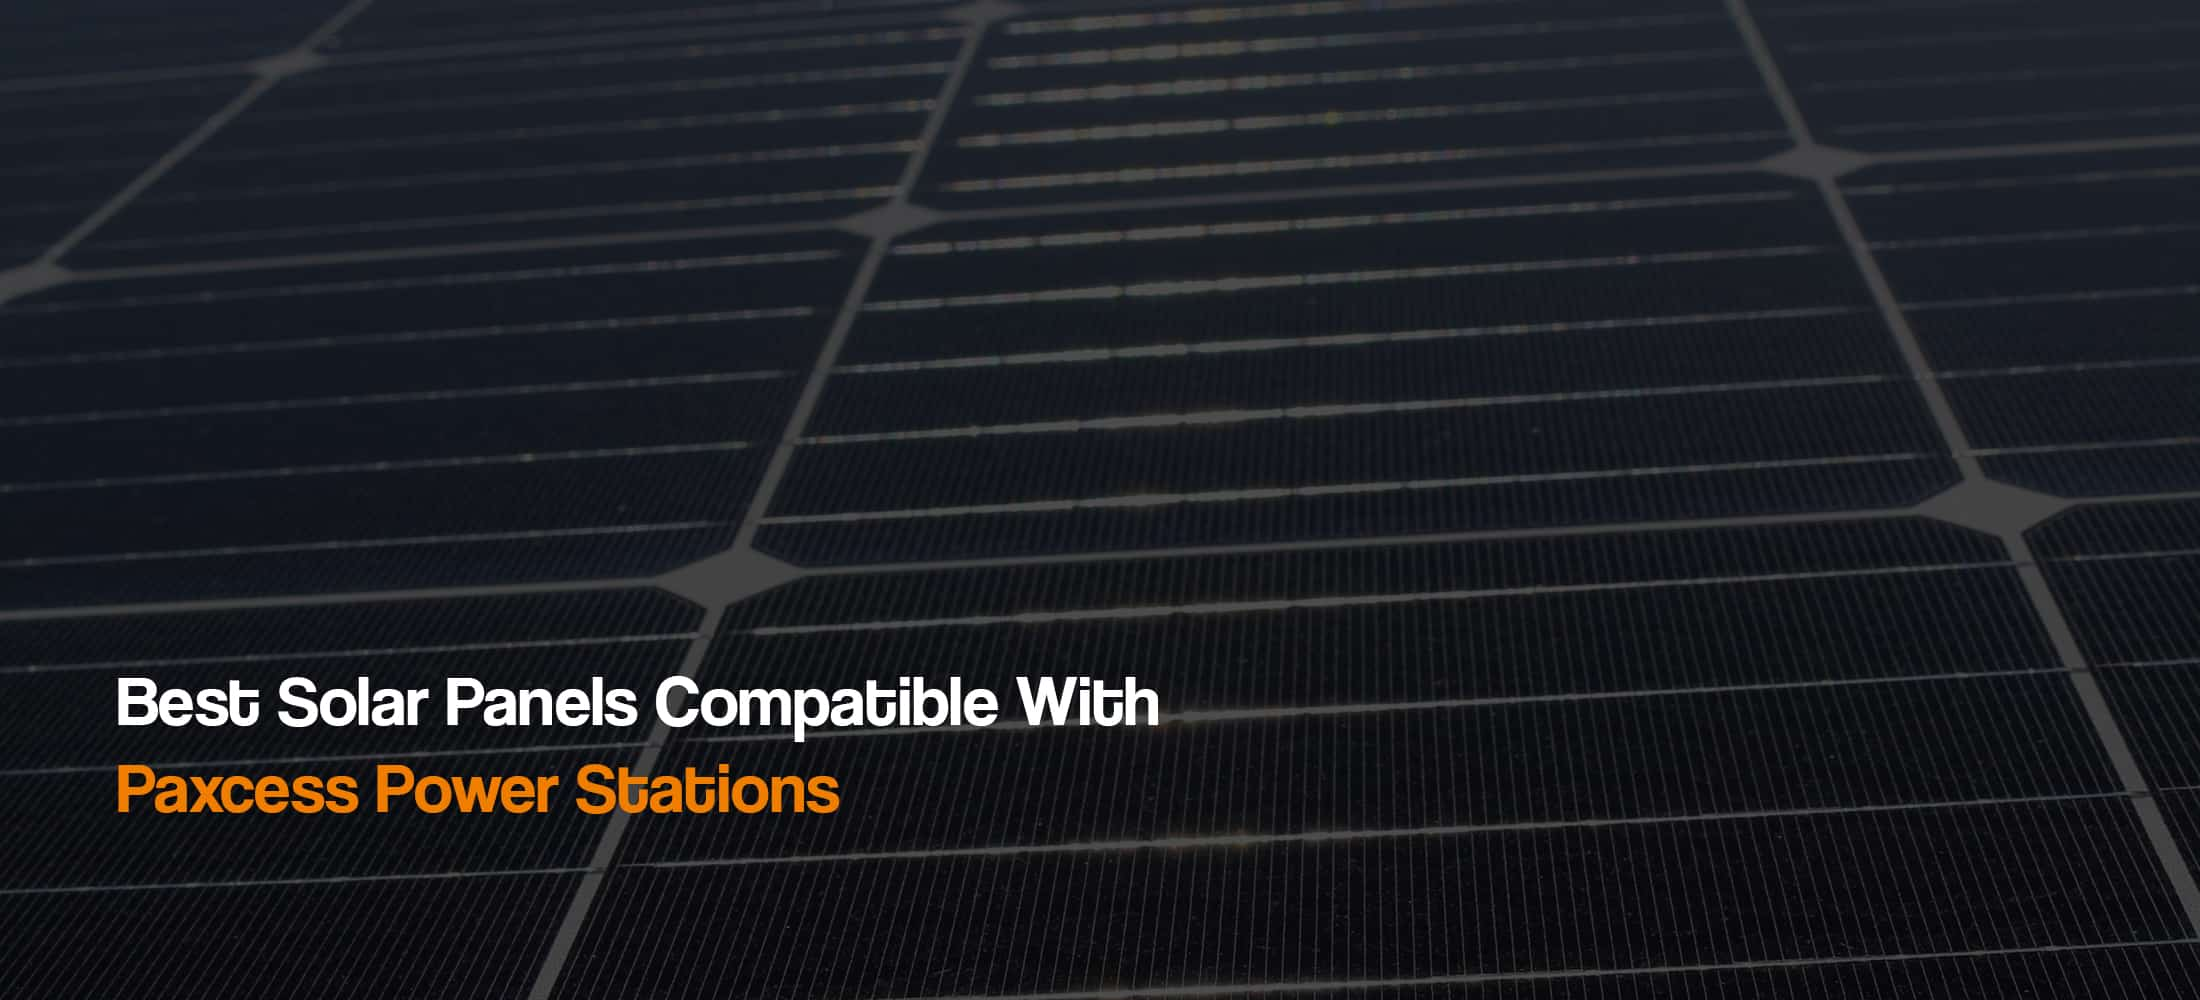 best-solar-panels-compatible-with-paxcess-portable-power-station-solar-generator-lithium-the-solar-addict